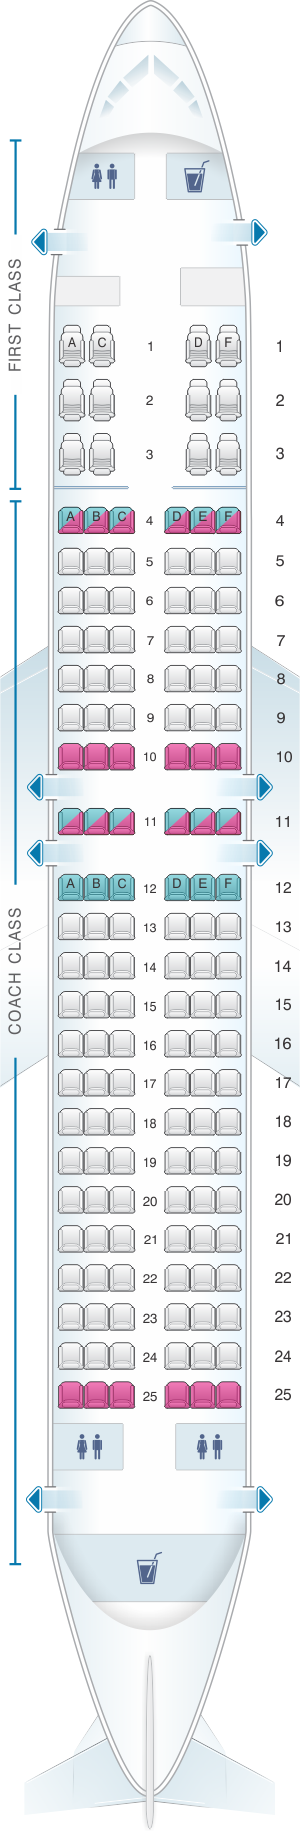 Seat map for US Airways Boeing B737 400